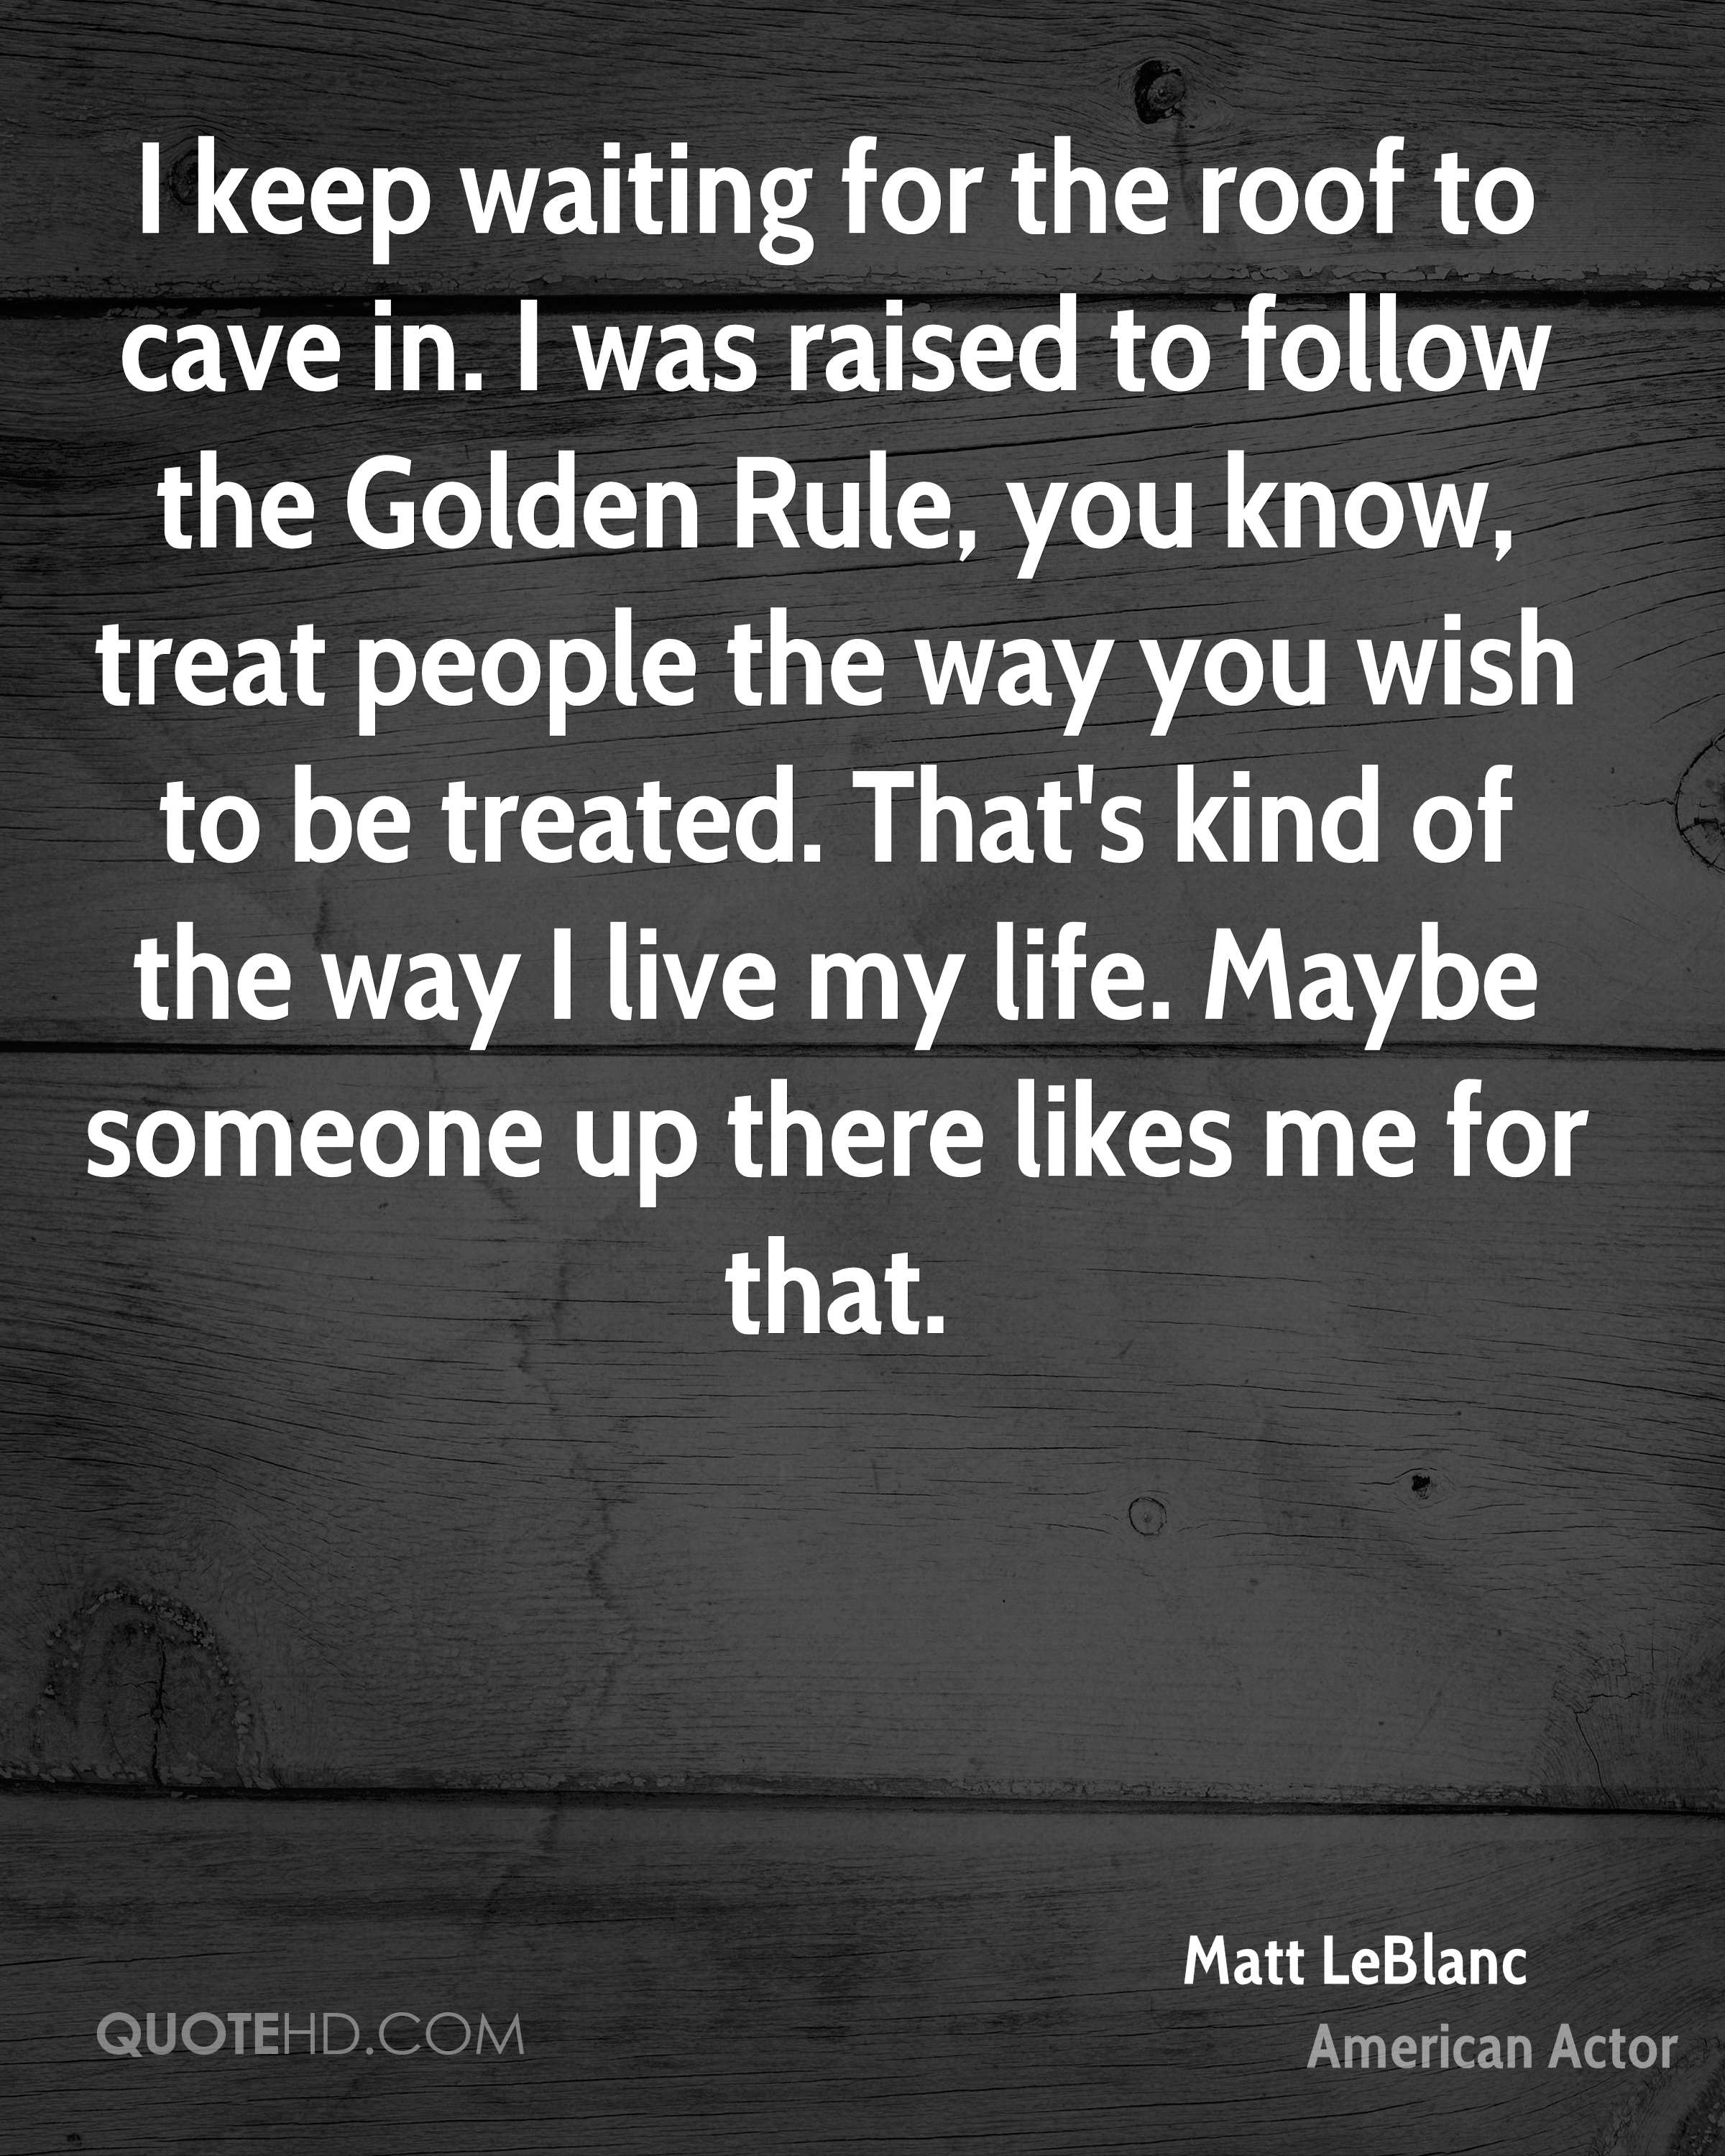 I keep waiting for the roof to cave in. I was raised to follow the Golden Rule, you know, treat people the way you wish to be treated. That's kind of the way I live my life. Maybe someone up there likes me for that.